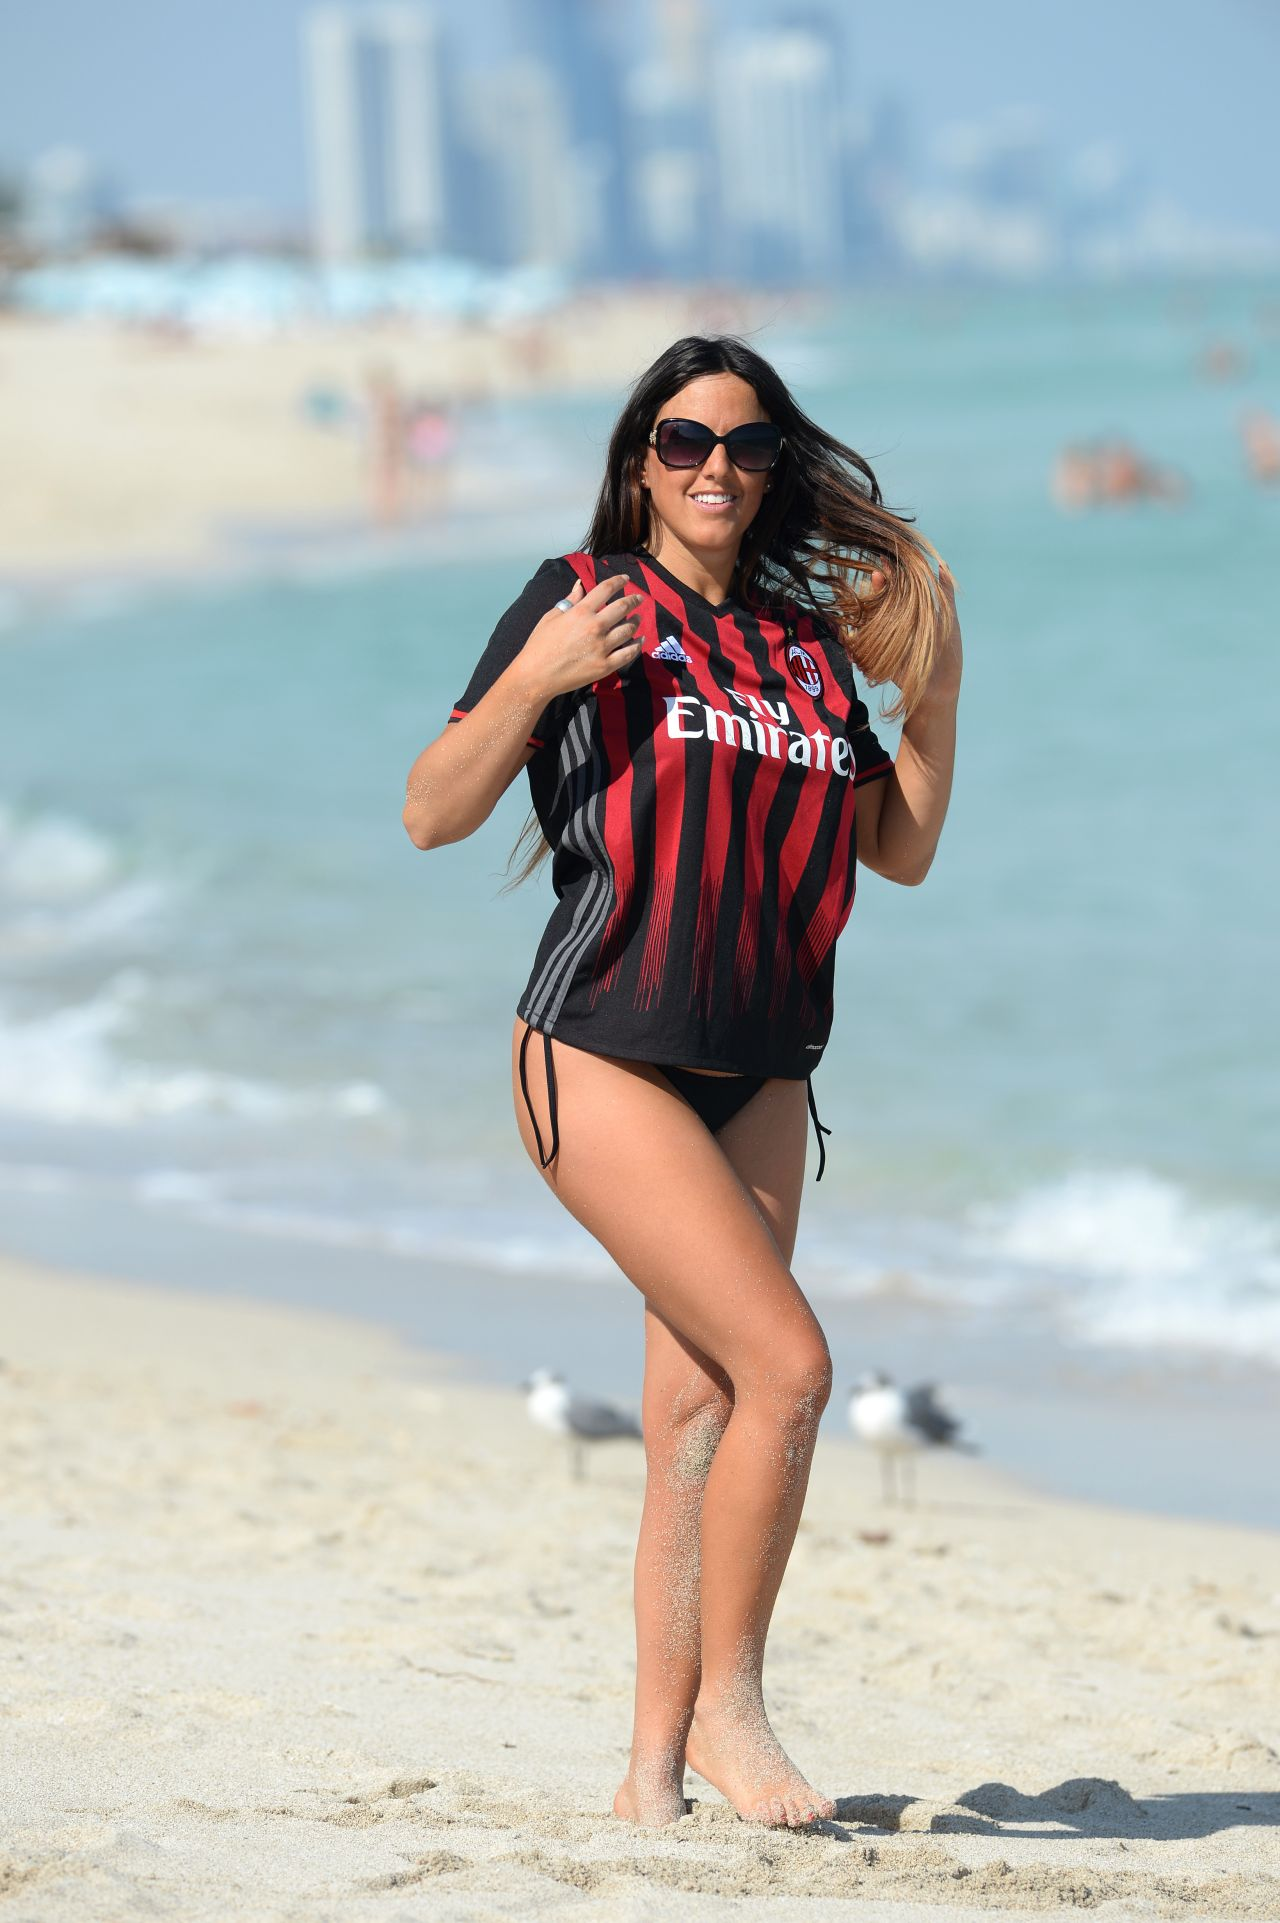 Claudia Romani Wearing Her Ac Milan Jersey Beach In